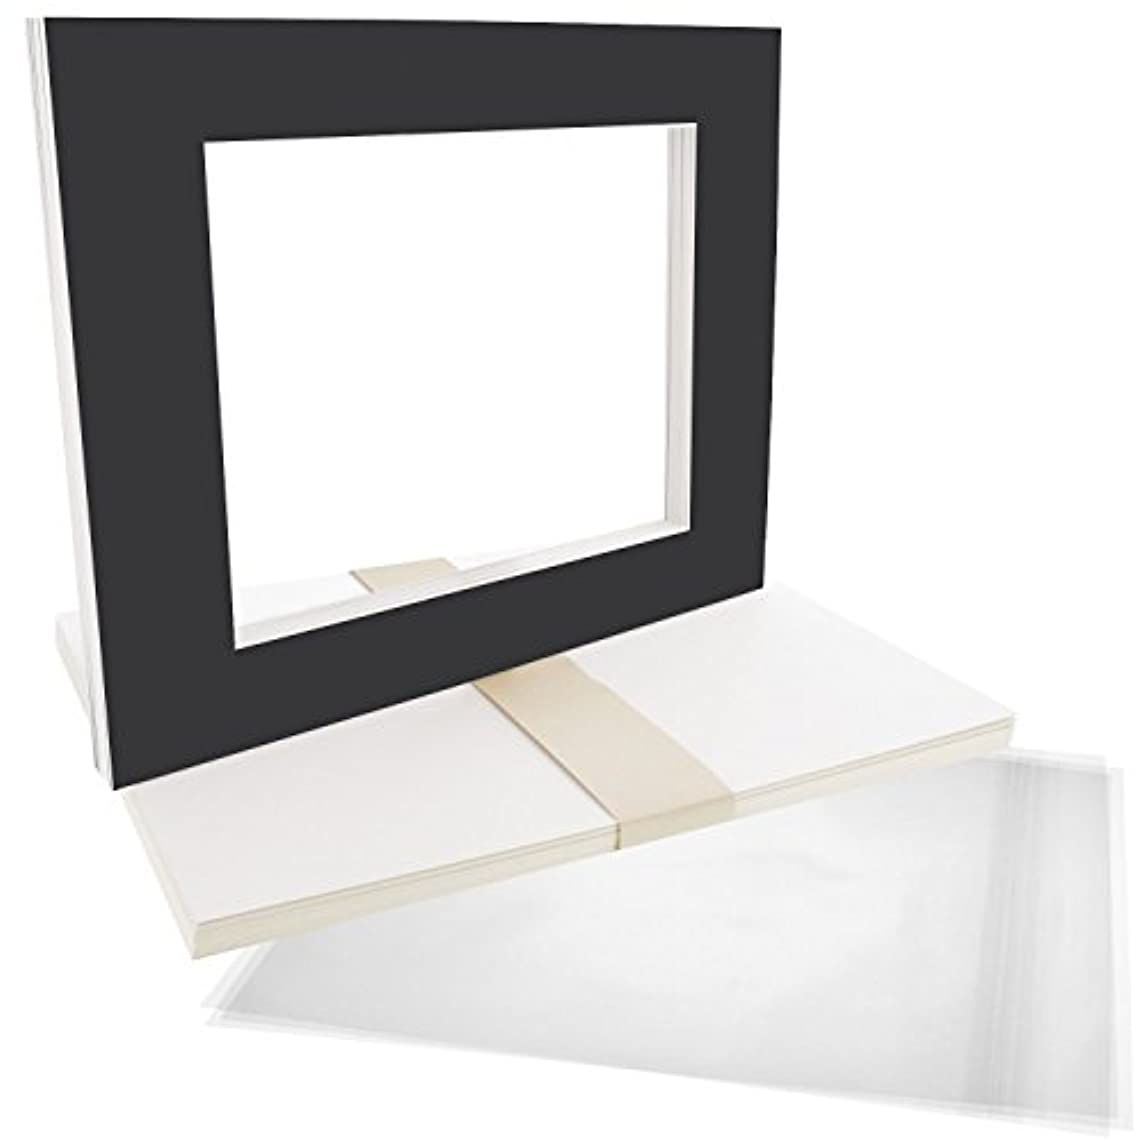 US Art Supply Art Mats Acid-Free Pre-Cut 11x14 Black Picture Mat Matte Sets. Includes a Pack of 10 White Core Bevel Cut Mattes for 8x10 Photos, Pack of 10 Backers & 10 Clear Sleeve Bags